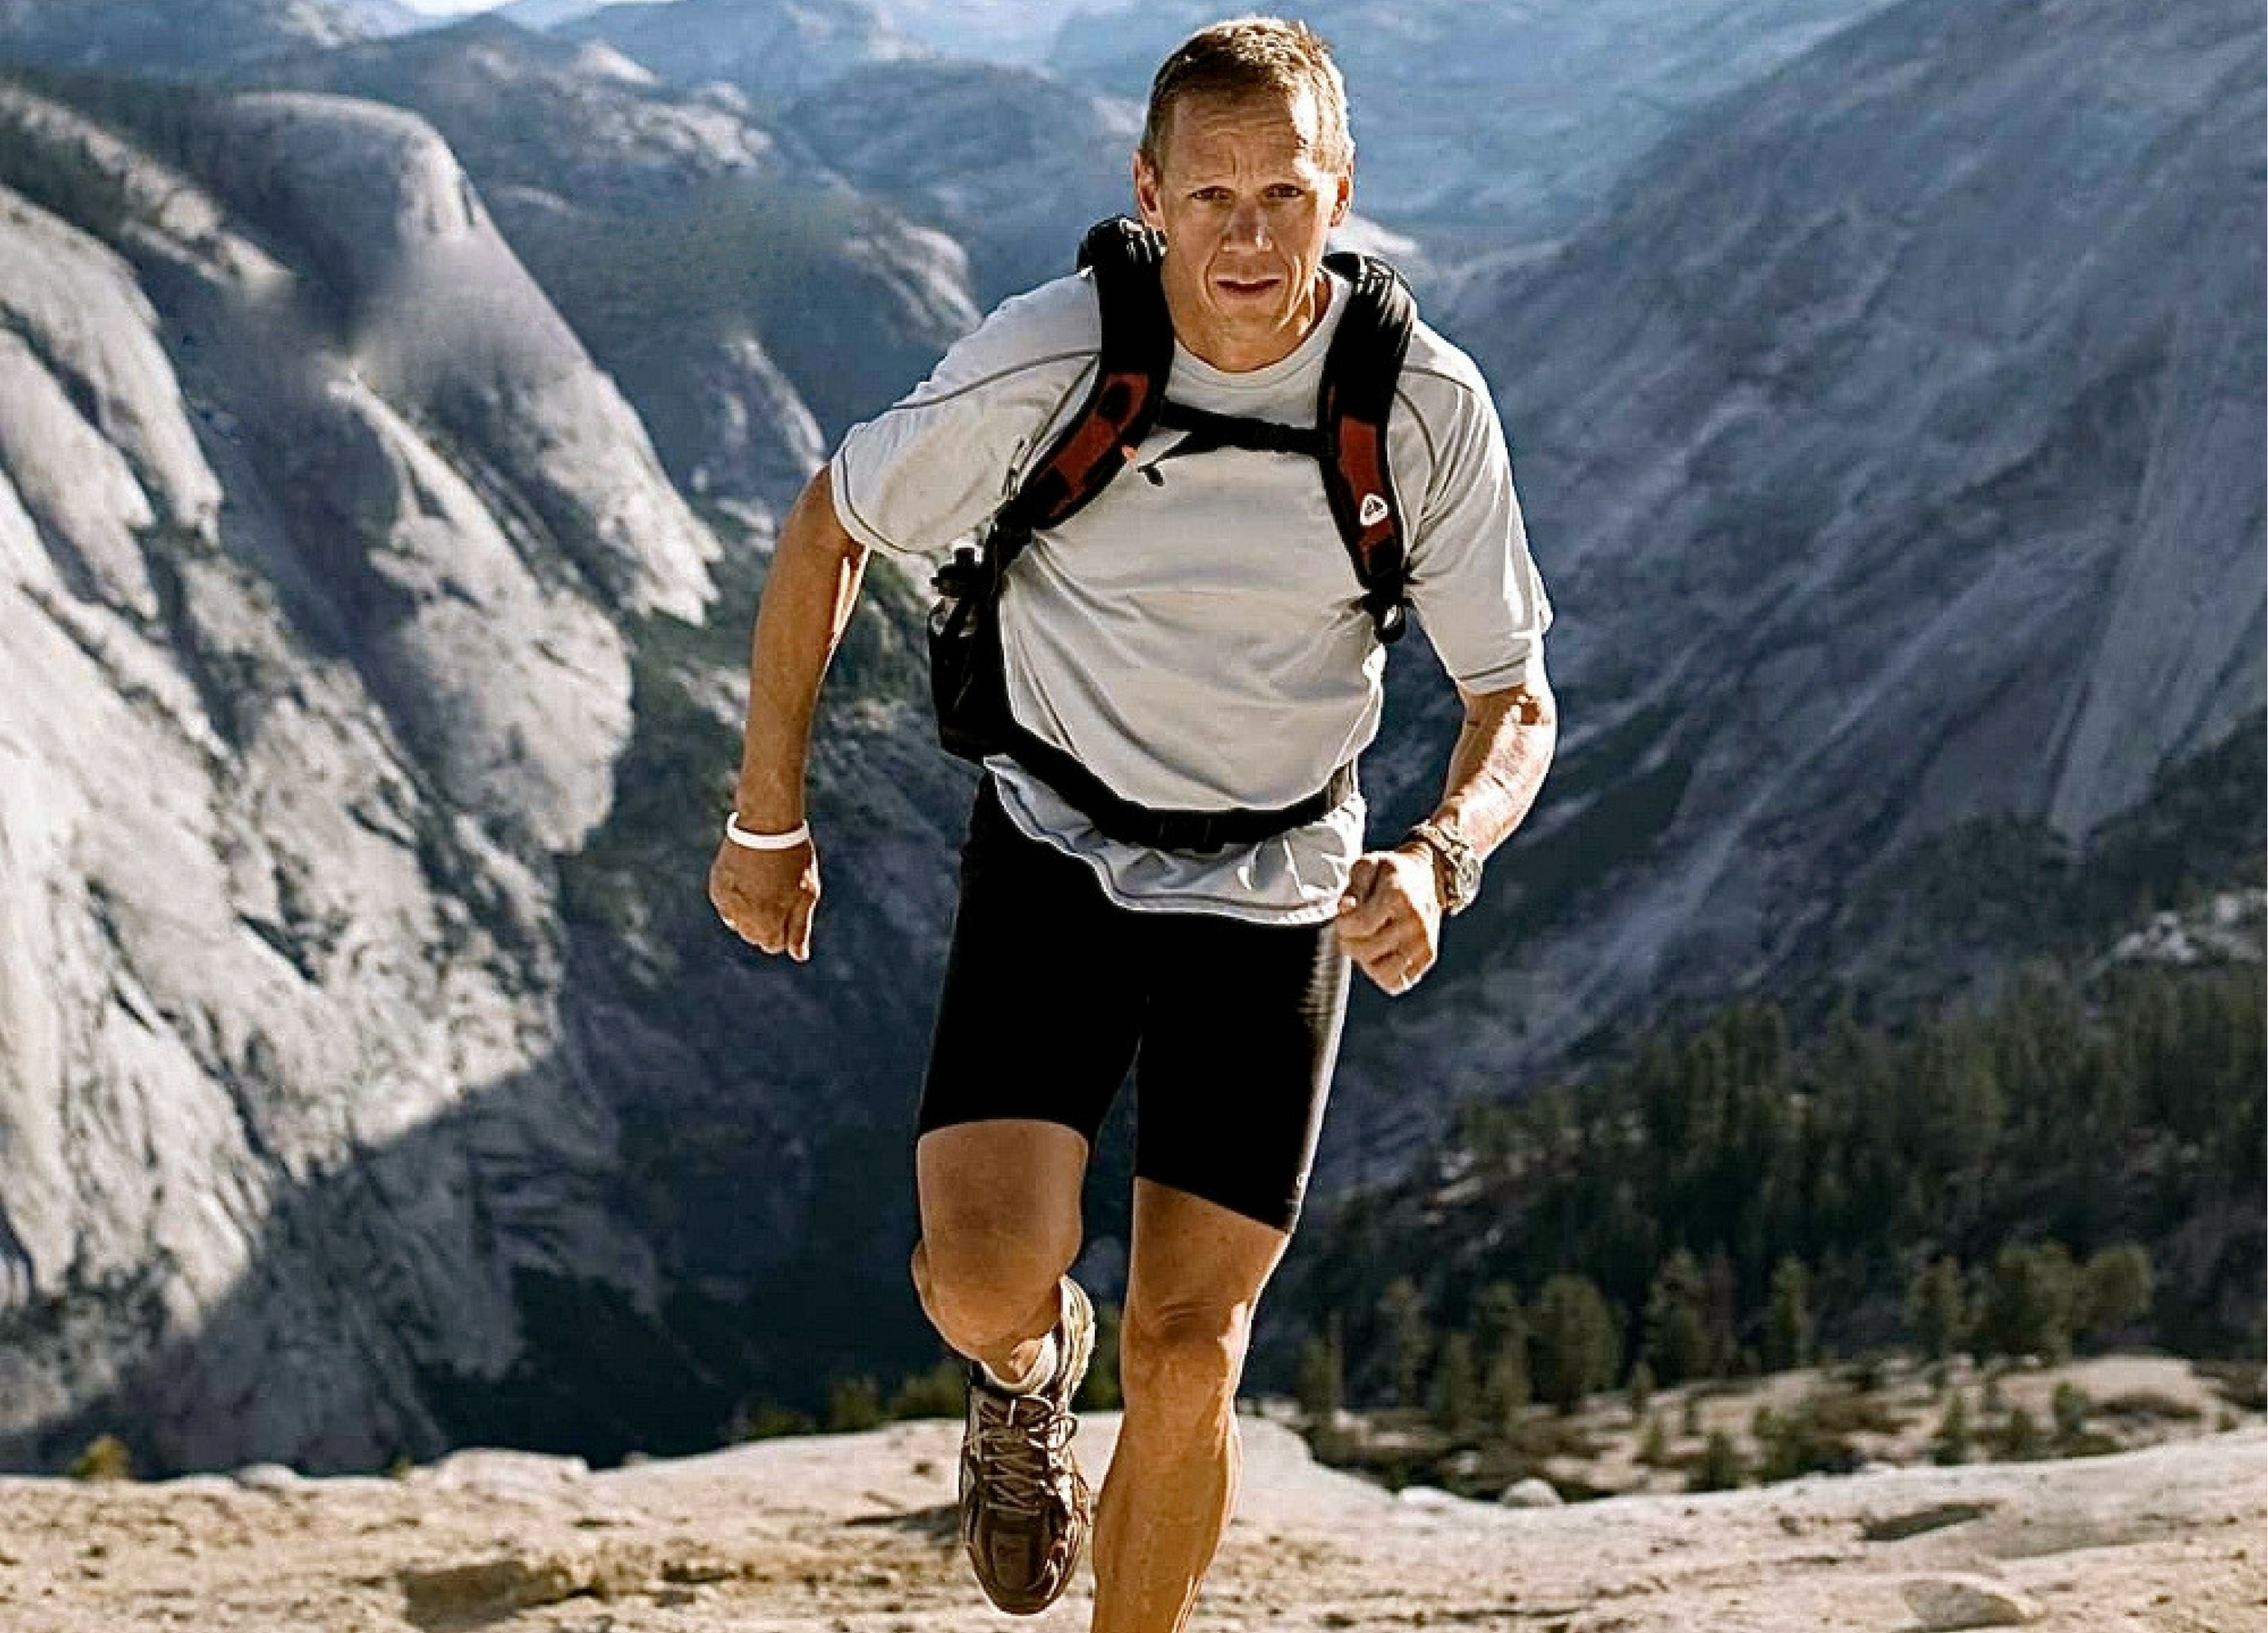 Episode #27: Mindset with Charlie Engle - Mindset with Charlie Engle, Author of Running Man, An Outlook to Overcome Extreme Odds